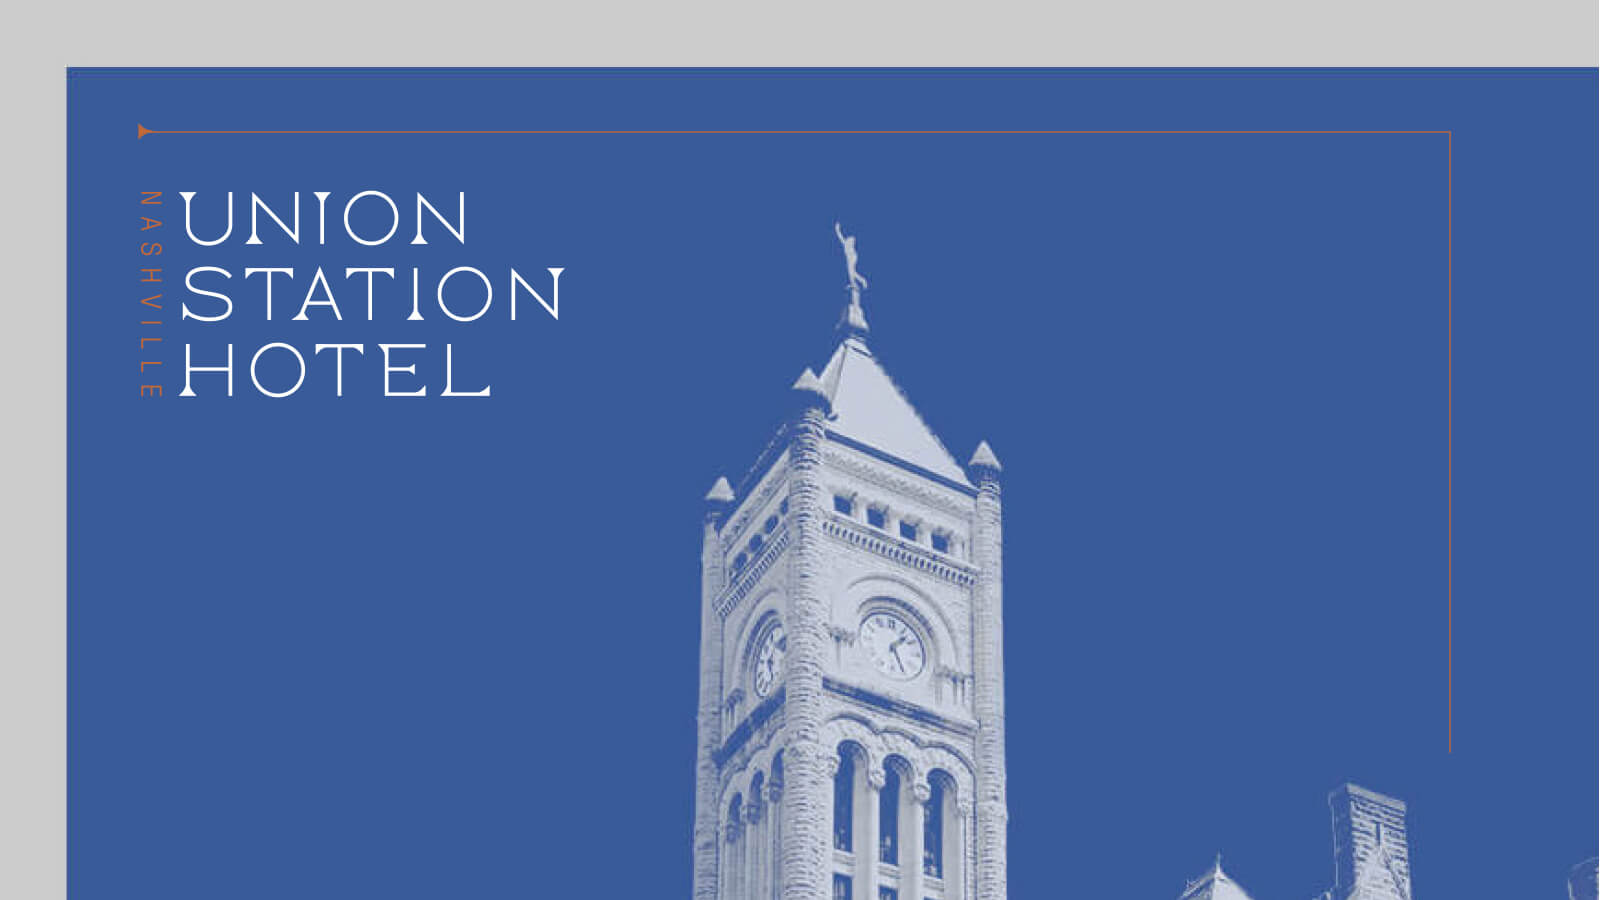 Union Station Hotel Nashville thumbnail for Fieker Brothers Production project